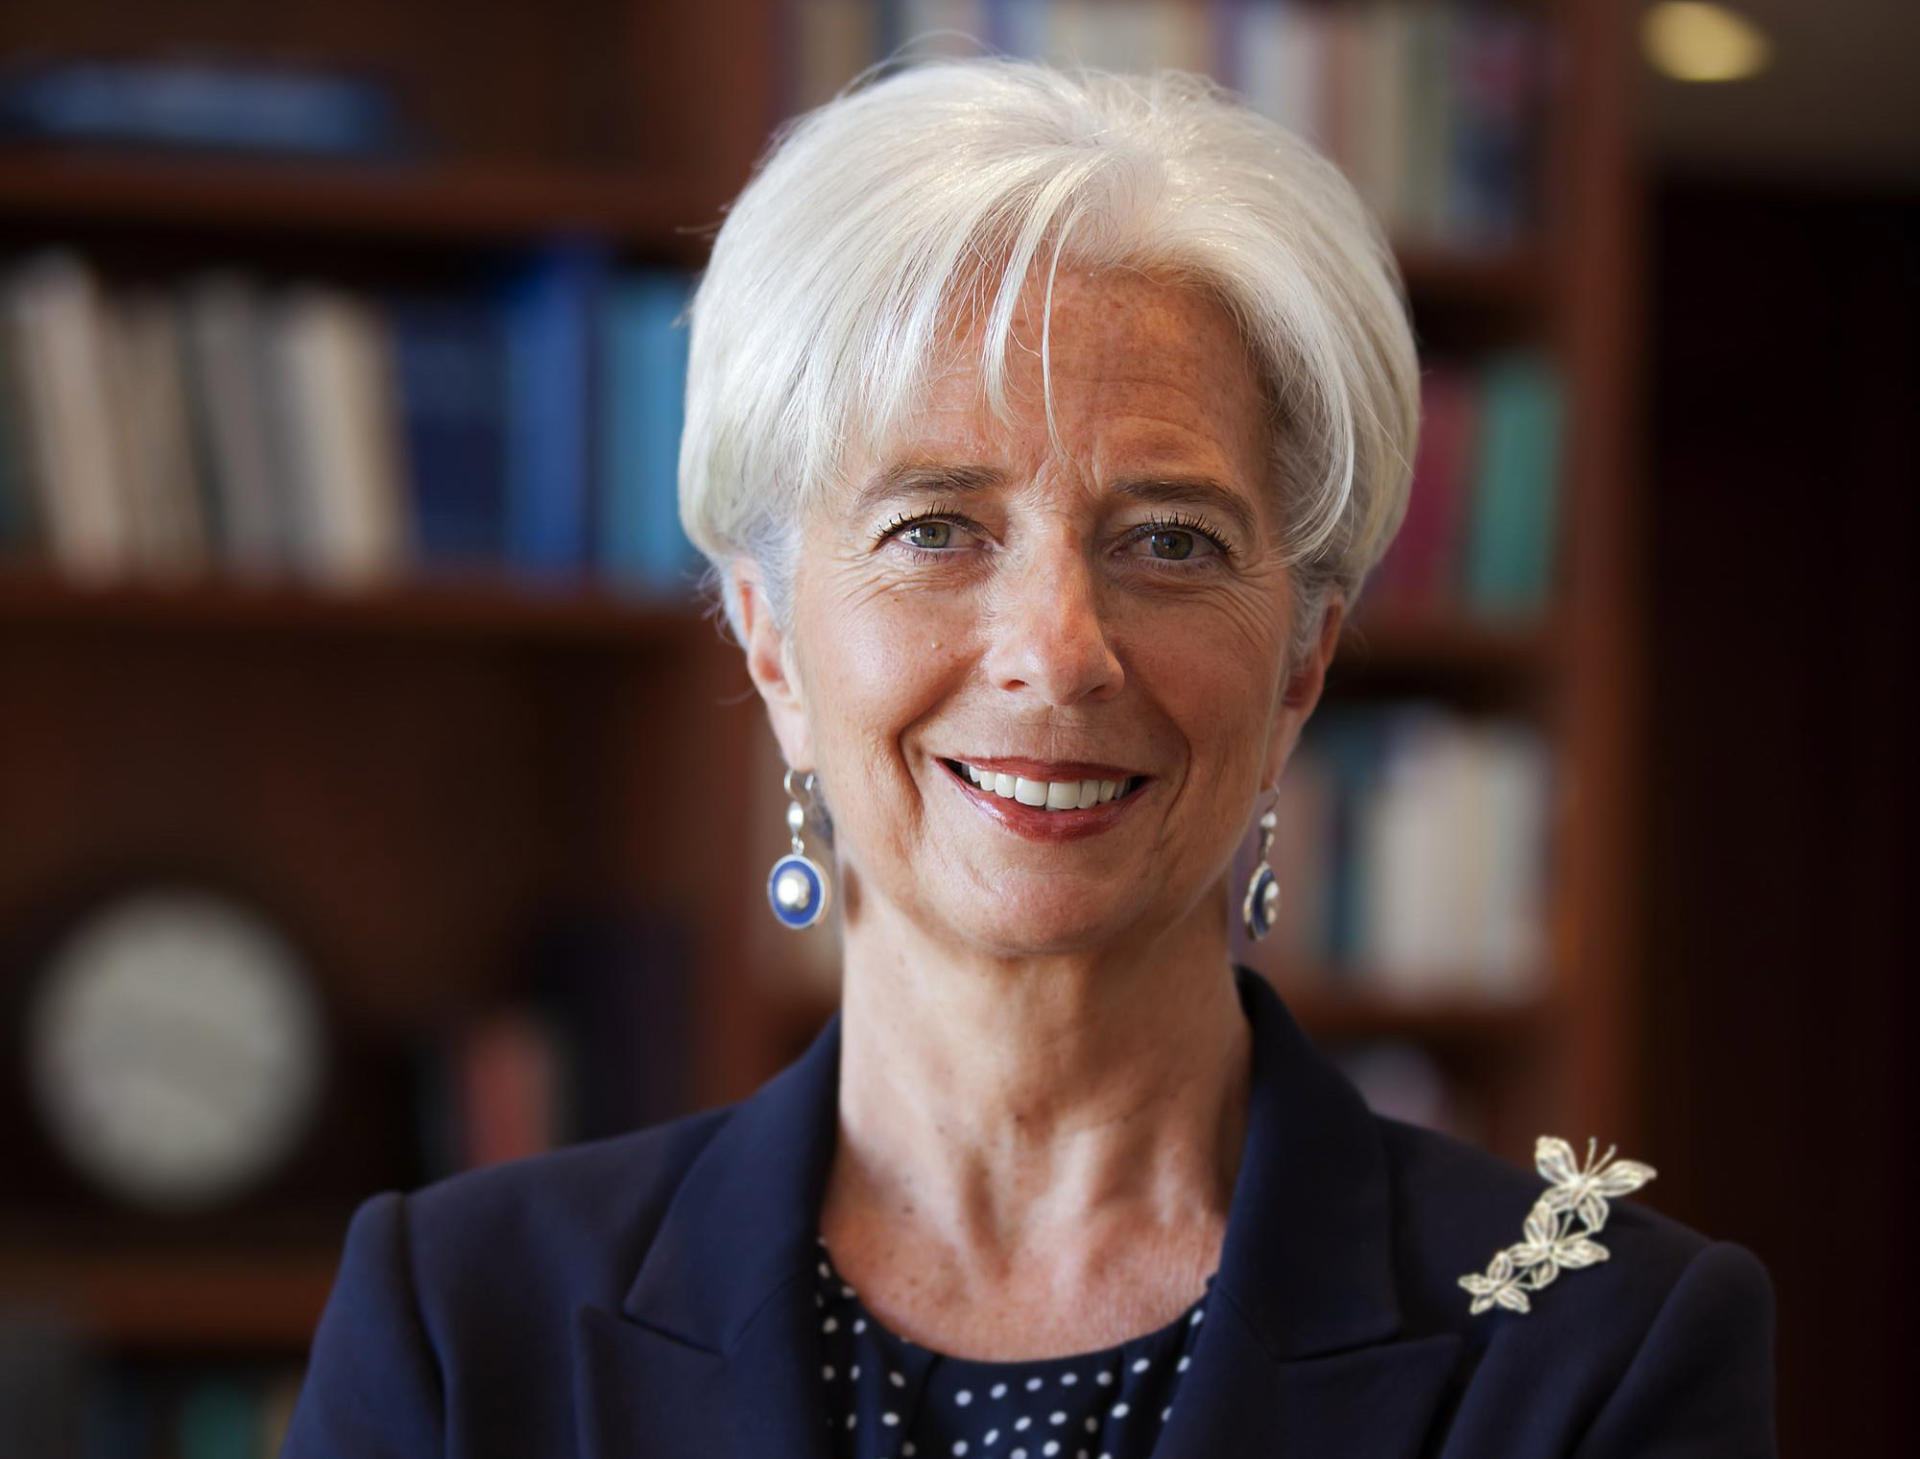 Head of IMF Lagarde: Uzbekistan needs new formula for inclusive growth and cooperation